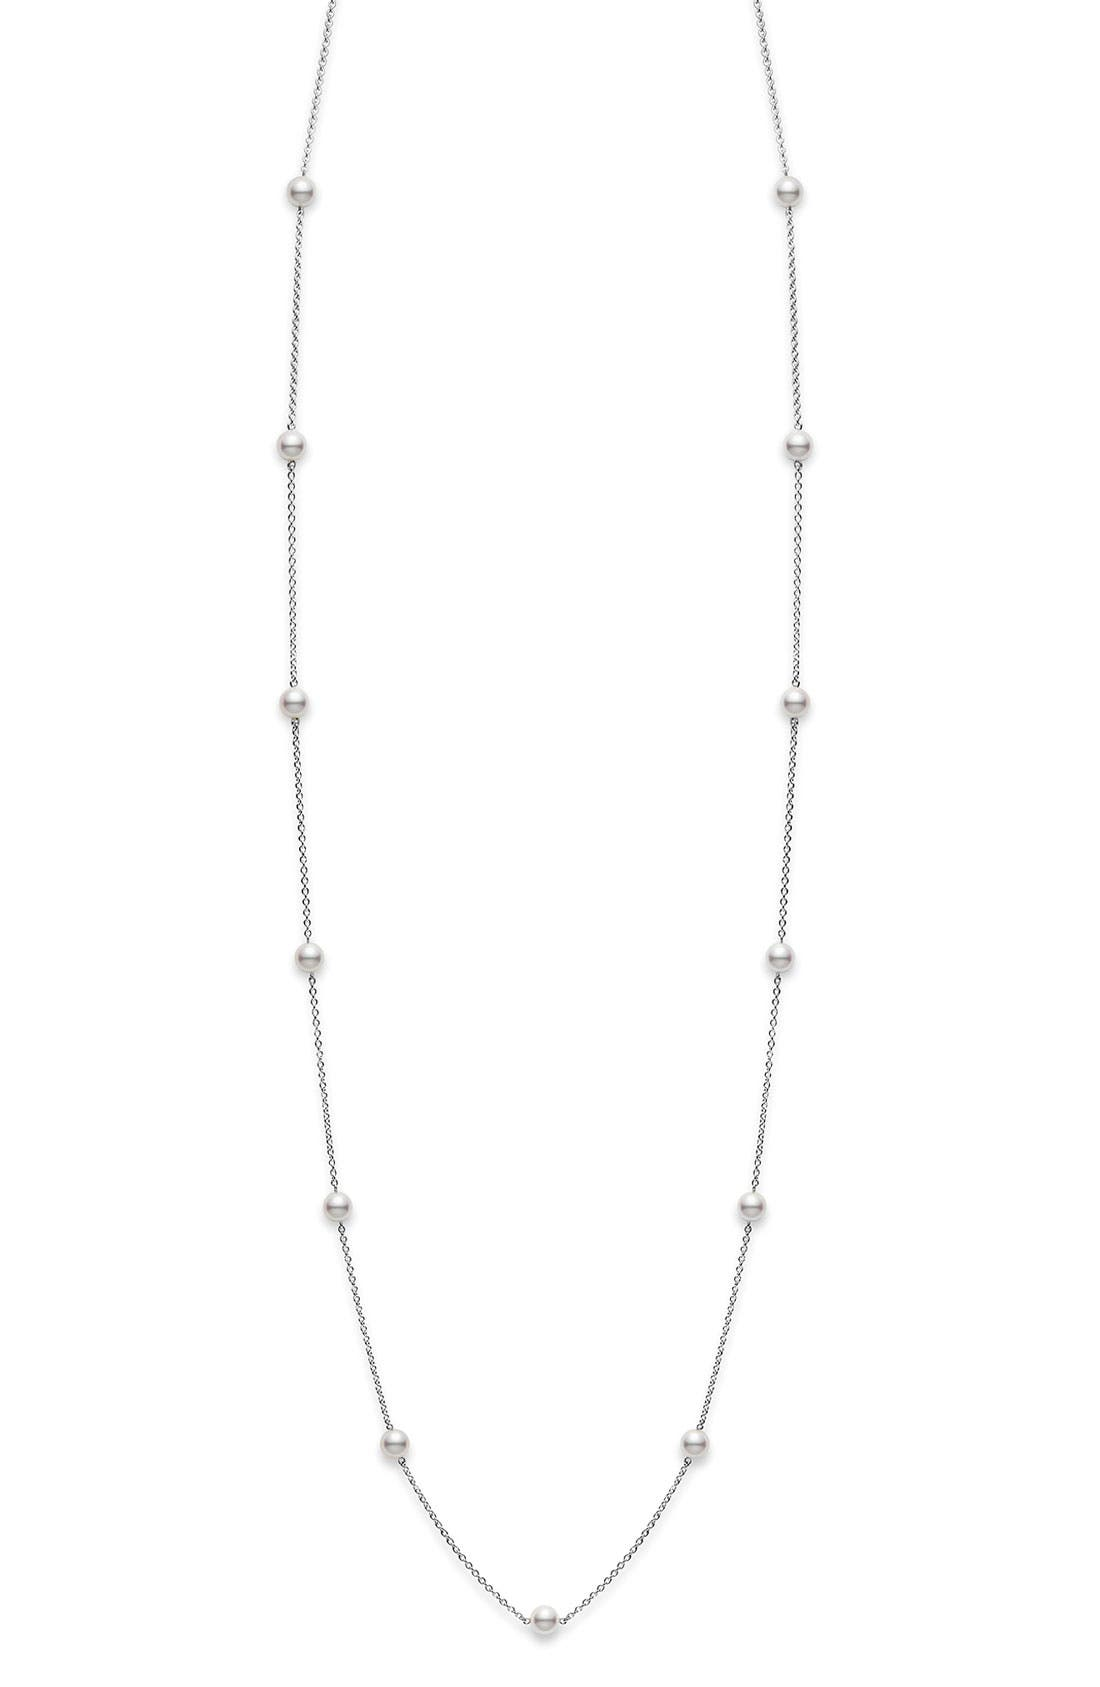 Alternate Image 1 Selected - Mikimoto Akoya Pearl Station Necklace